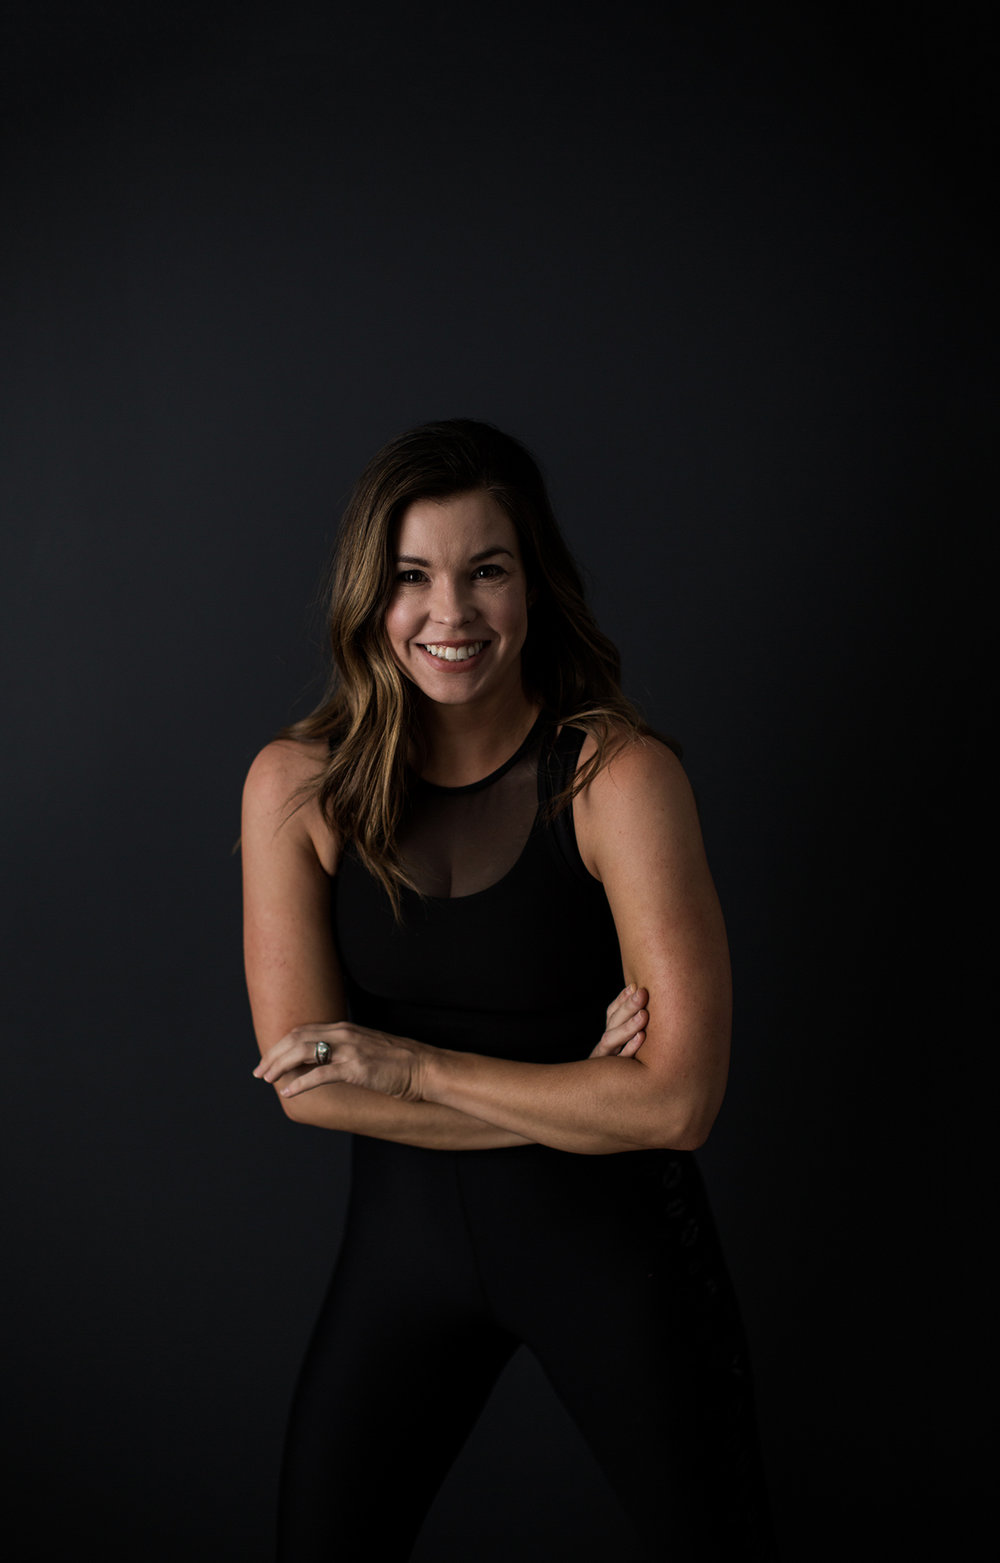 ASHLEY FOLMAR - With a bachelor's degree in nutrition science, Ashley has always had a passion for overall health and wellness. Ashley's love for a good sweat, dance party and heart-pumping music made teaching at Three15 a perfect fit. This mom of three loves speed, big beats, embracing the burn and encouraging every rider in the studio! With a combination of rhythm and resistance, she strives to inspire riders to find connection and strength, while letting go and having fun. Most importantly, Ashley believes it is all about showing up and challenging yourself.Ashley is dedicated to growing the Three15 family. She hopes to continue to inspire this community to nurture their bodies and minds through nourishing food and fitness. Favorite moves on the bike: Pushups, Taps, Double Beat + Shoulder Taps Go- to move at the barre: Triple 90 with a ball or resistance bandArtists you can expect to hear in my class: David Guetta, Don Diablo, Flo Rida, Beyoncé and the occasional 90s-2000s hip-hop In Birmingham, you can find me hanging: At a local park or restaurant with her husband wrangling 3 small monsters (with a beverage in hand...if not buy her one) Cheers!